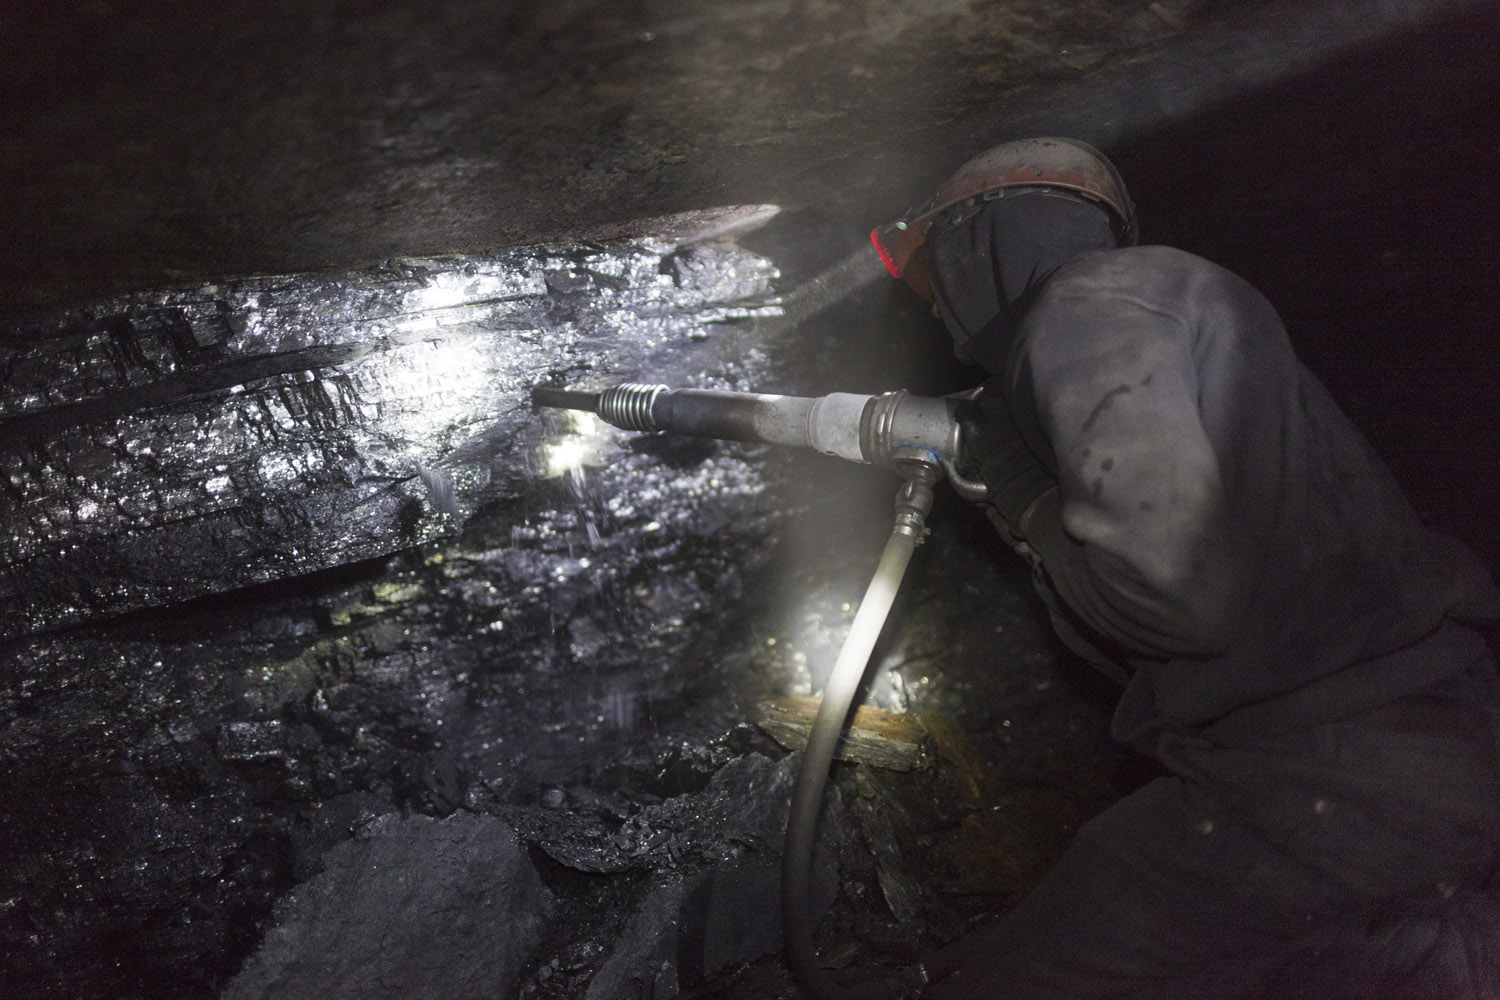 Tolek (23), working several hundred meters underground in an illegal mine in Davidovka.